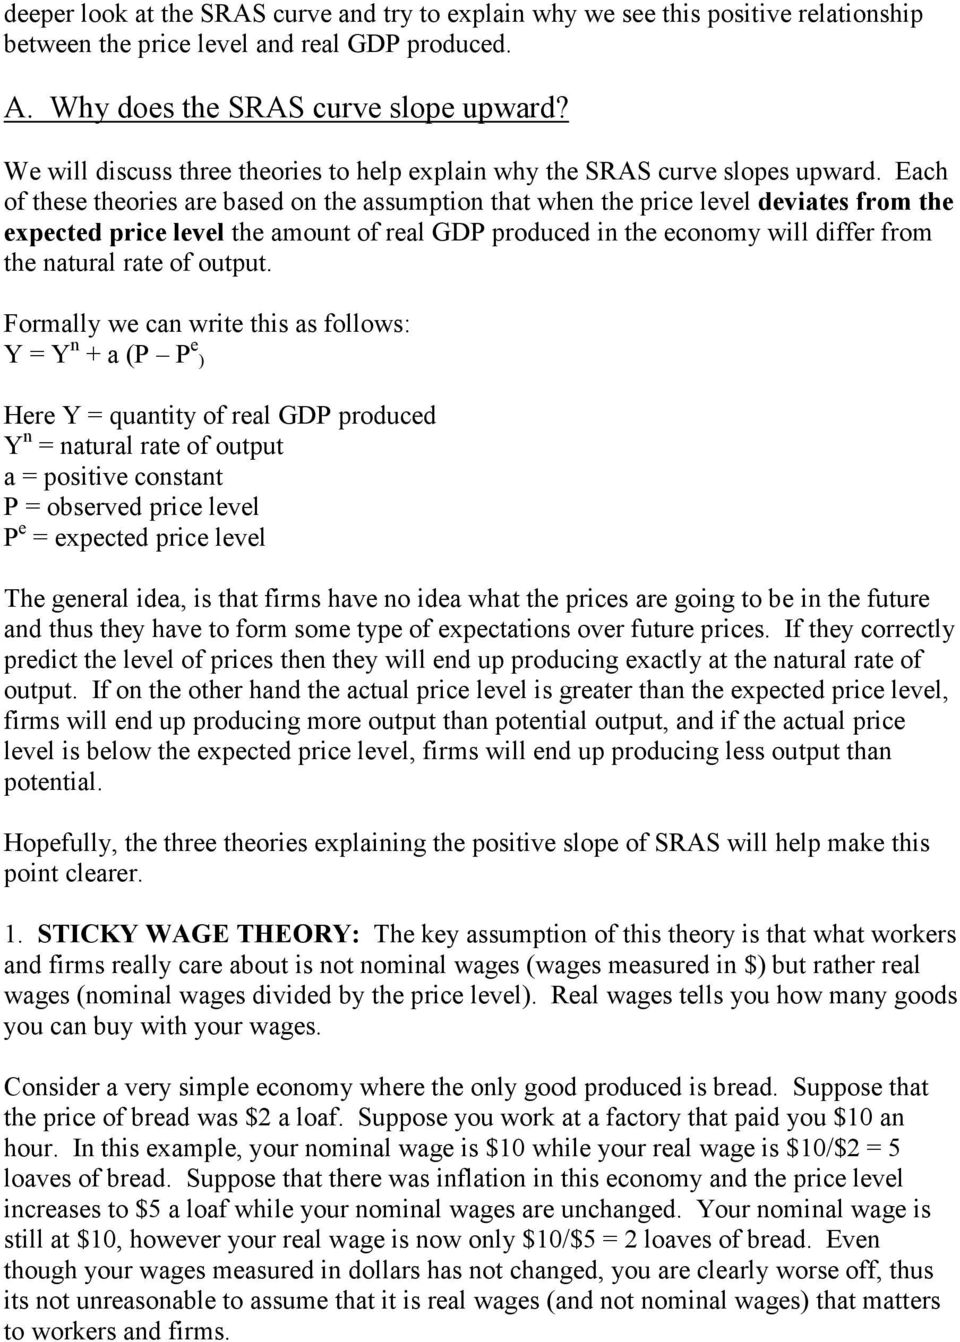 Each of these theories are based on the assumption that when the price level deviates from the expected price level the amount of real GDP produced in the economy will differ from the natural rate of